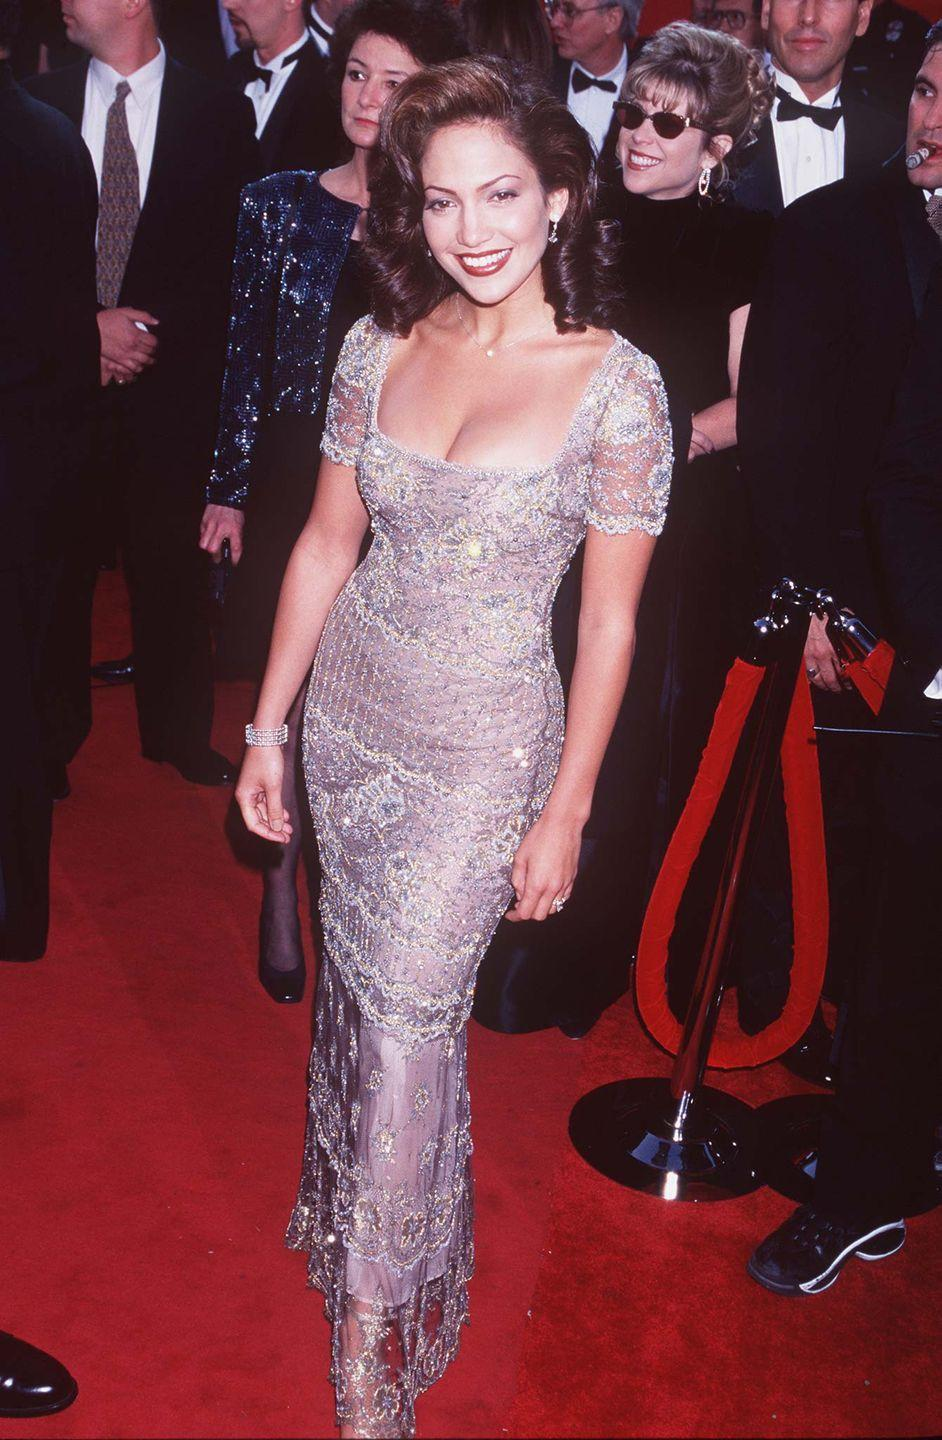 <p><strong>When: </strong>March 1997</p><p><strong>Where: </strong>The Academy Awards</p><p><strong>Wearing: </strong>Badgely Mishka</p>